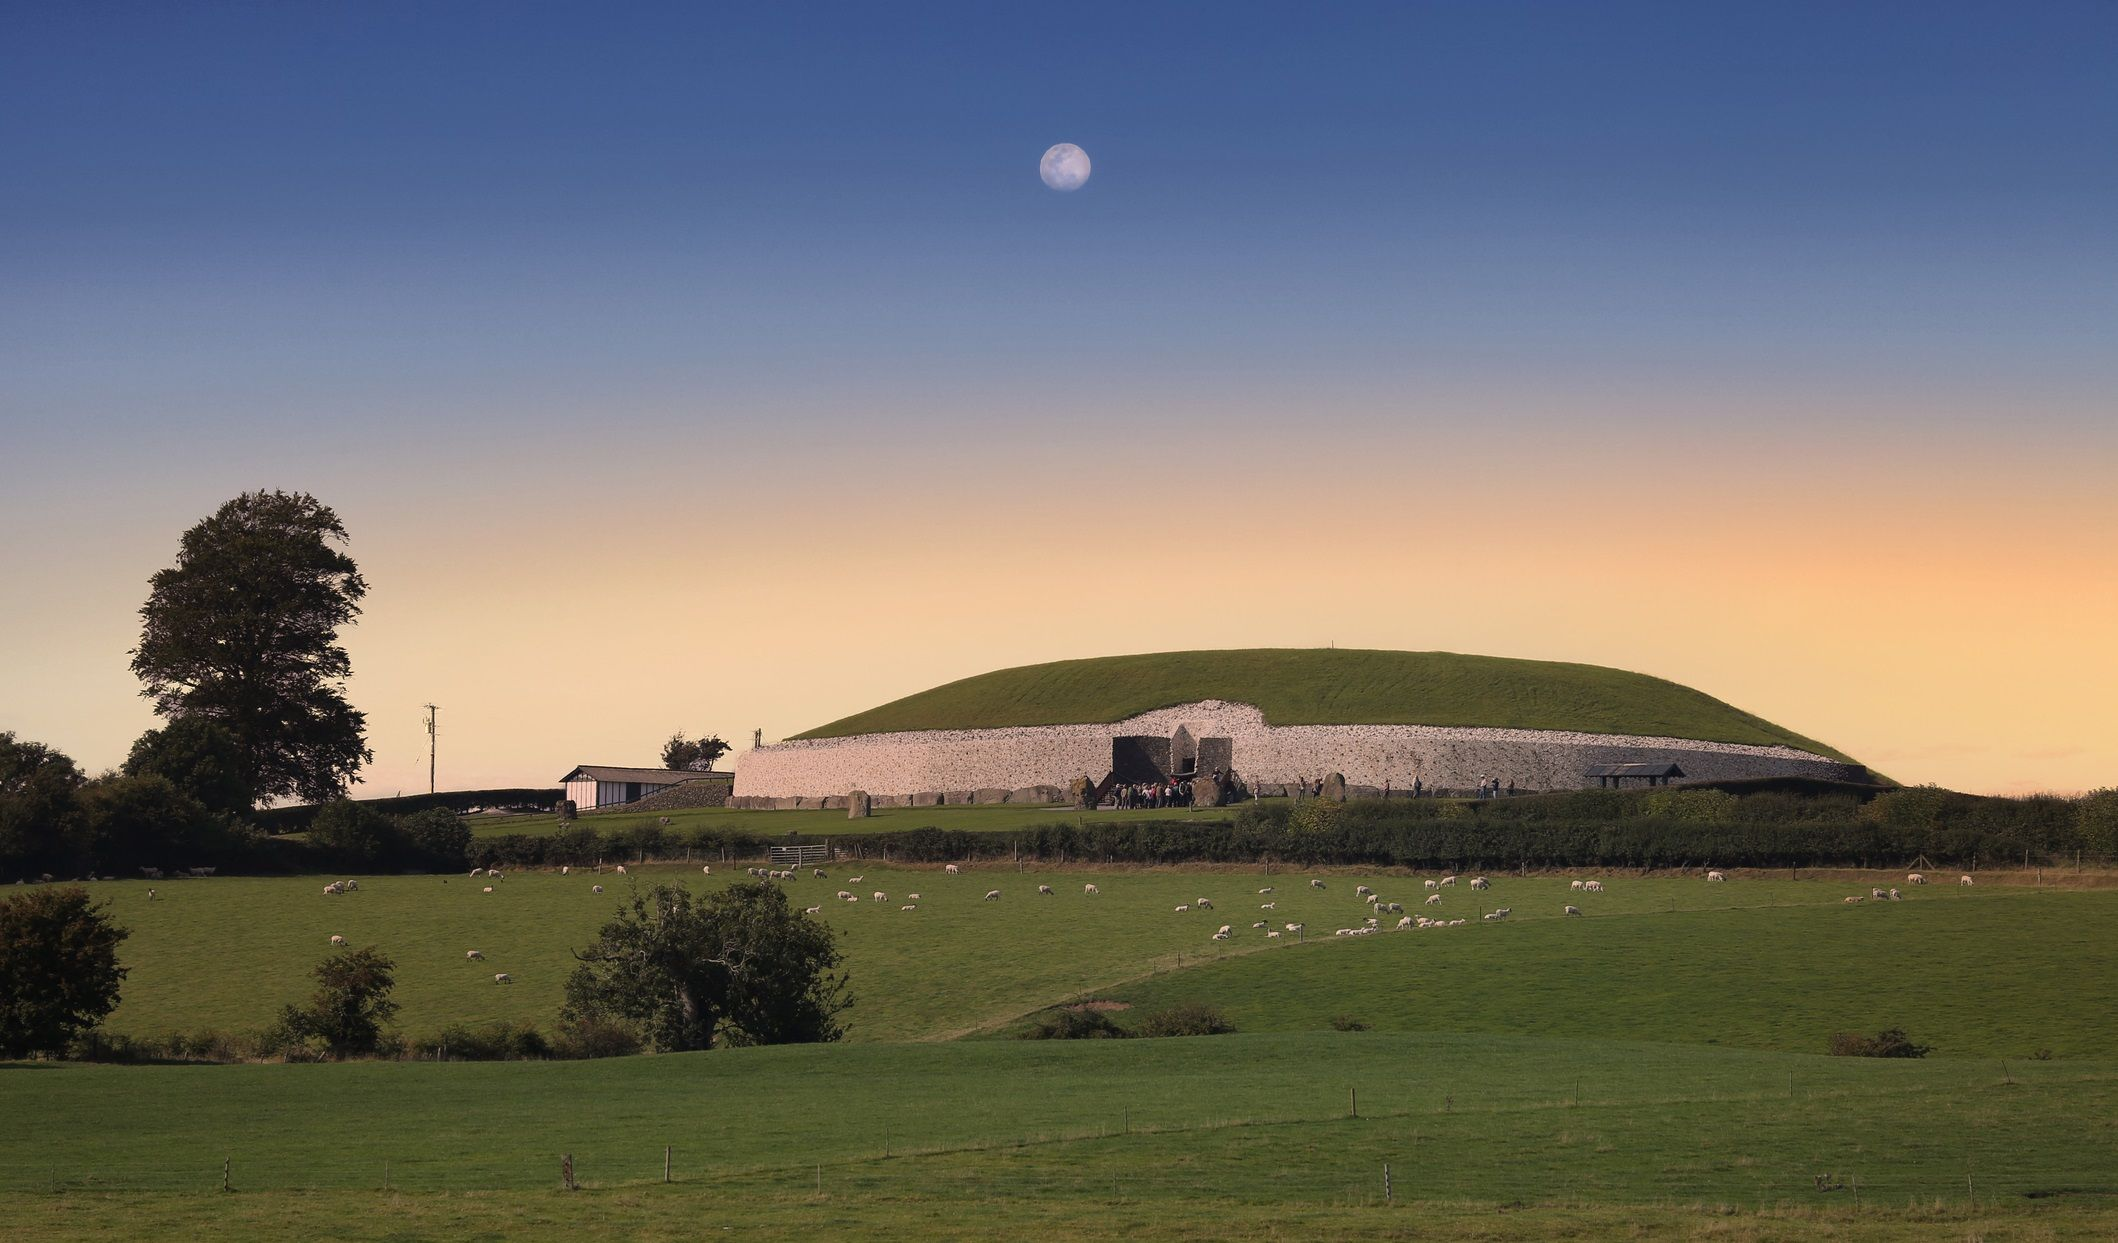 newgrange-megalithic-underground-passage-tombs---haunted-ireland-dreamstimem162123433